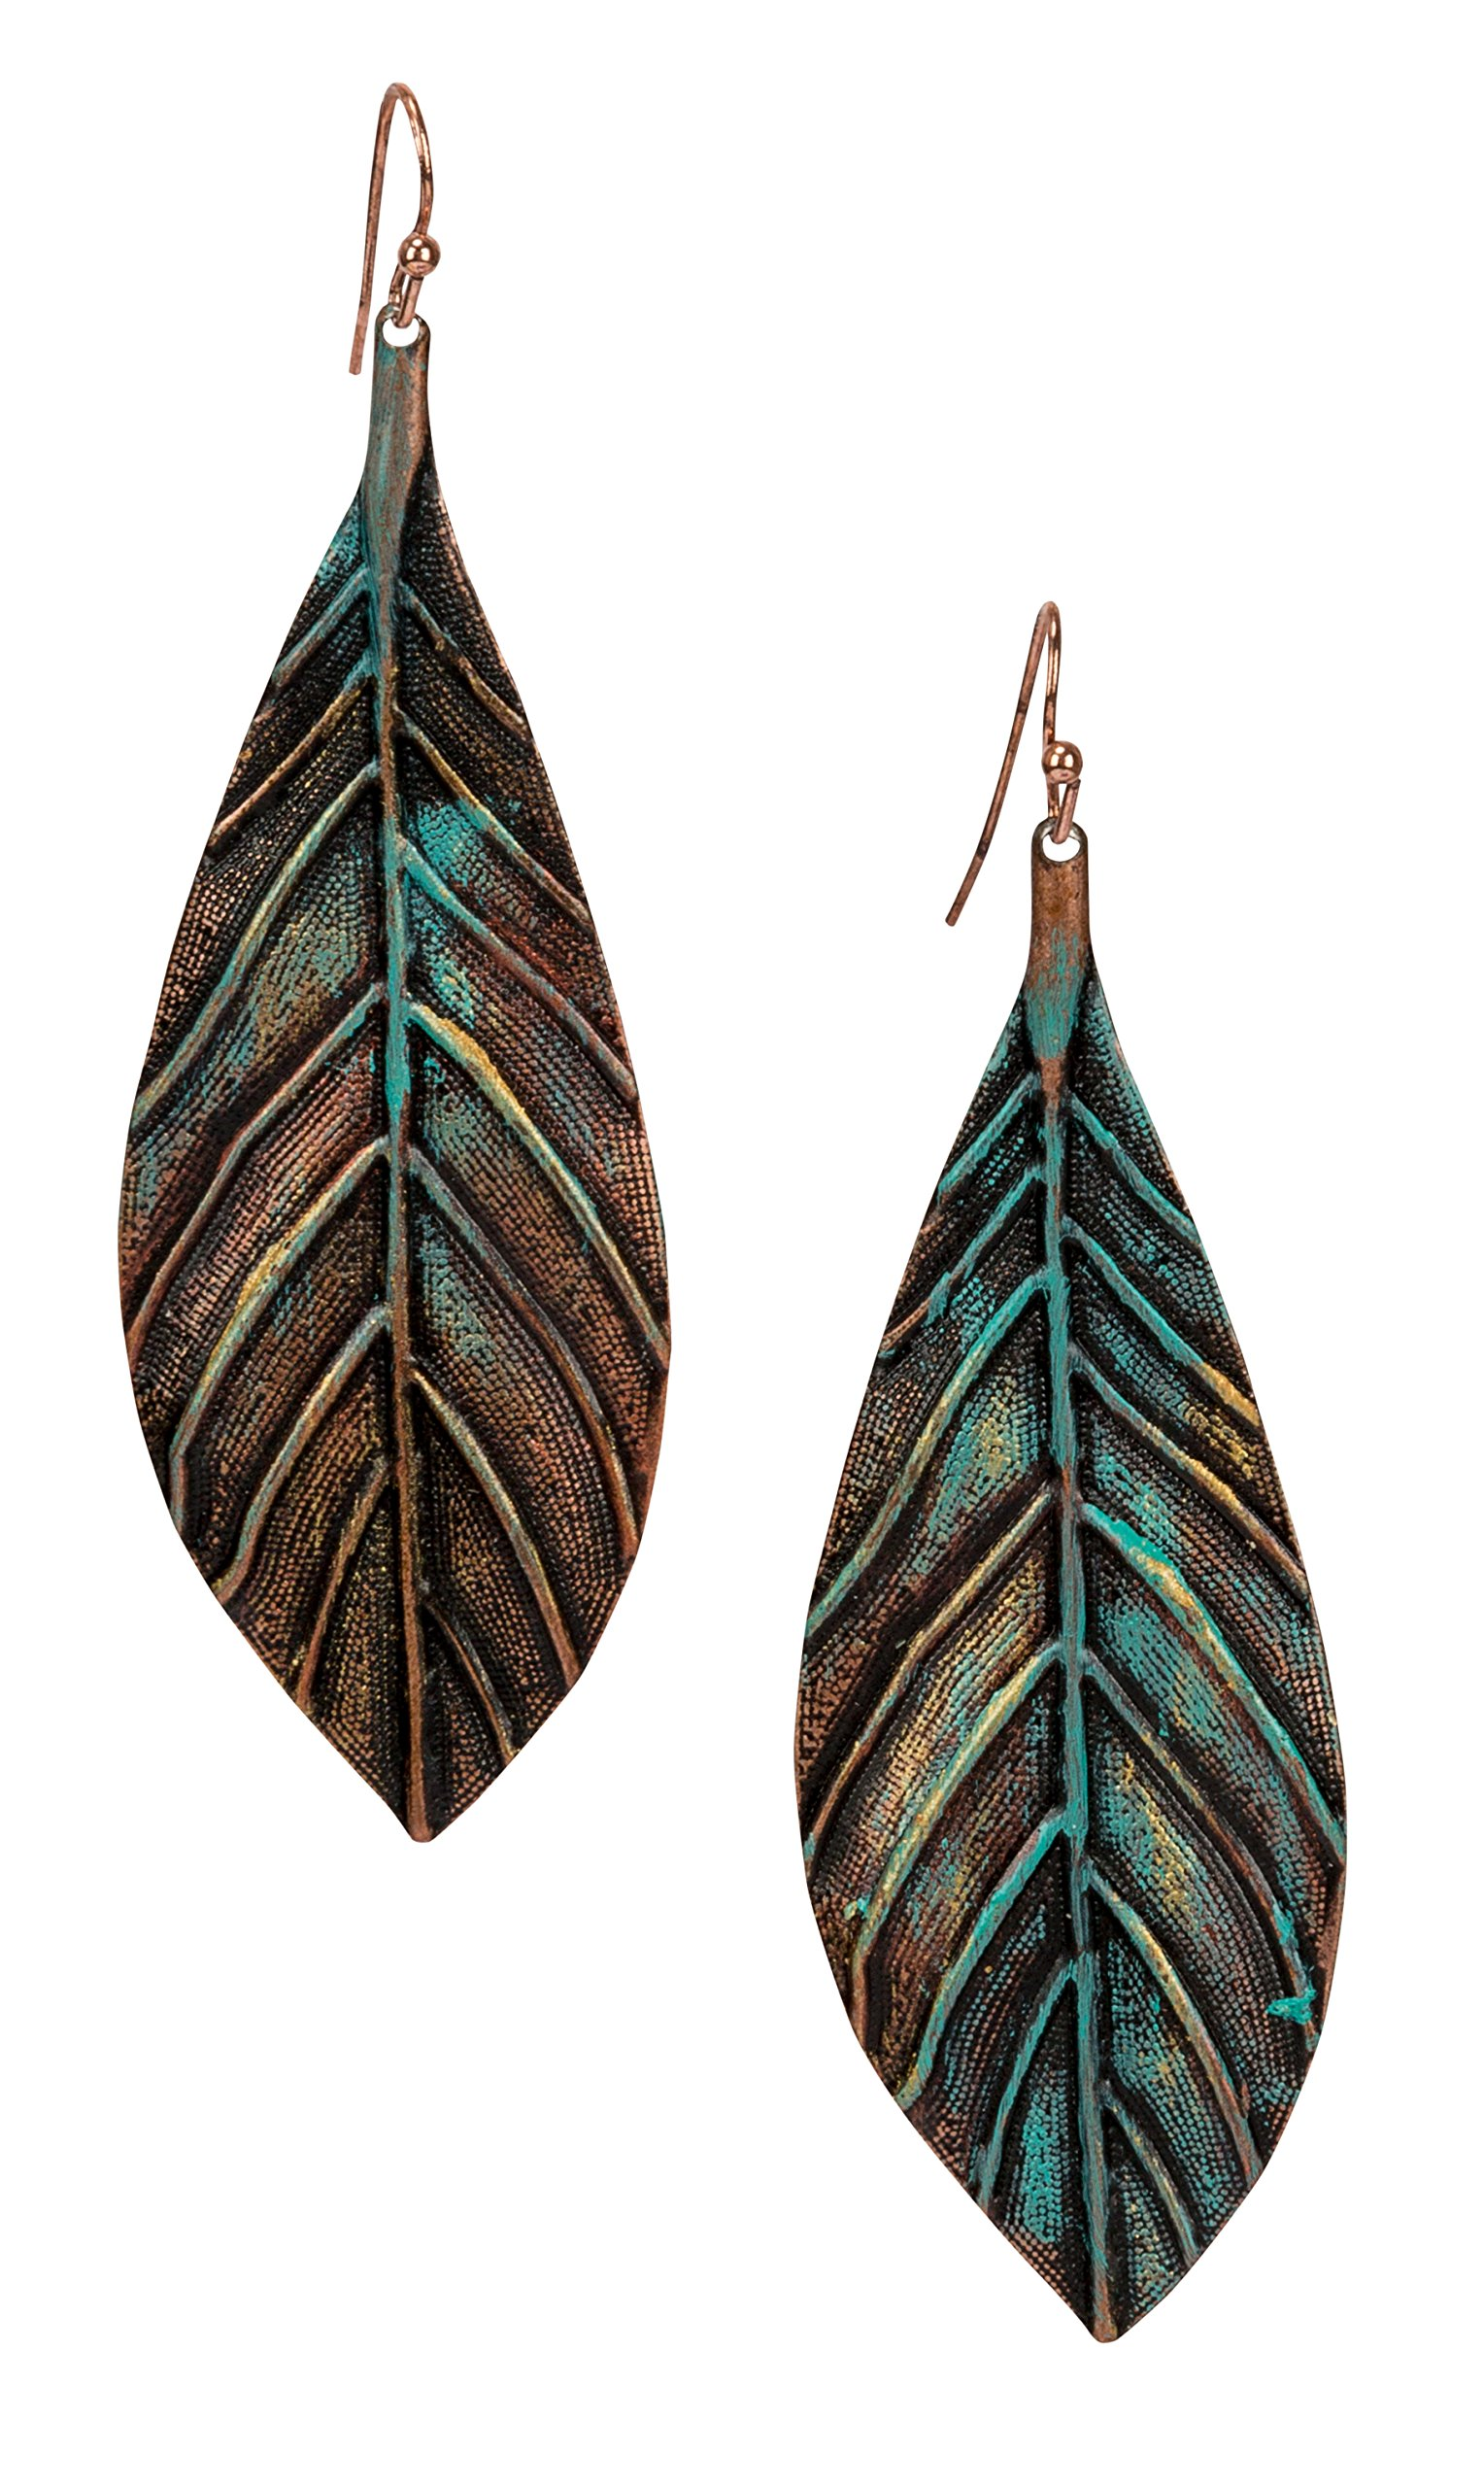 New! Handmade Boho Lightweight Statement Leaf Earrings with Detailed Texture for Women | SPUNKYsoul Collection by SPUNKYsoul